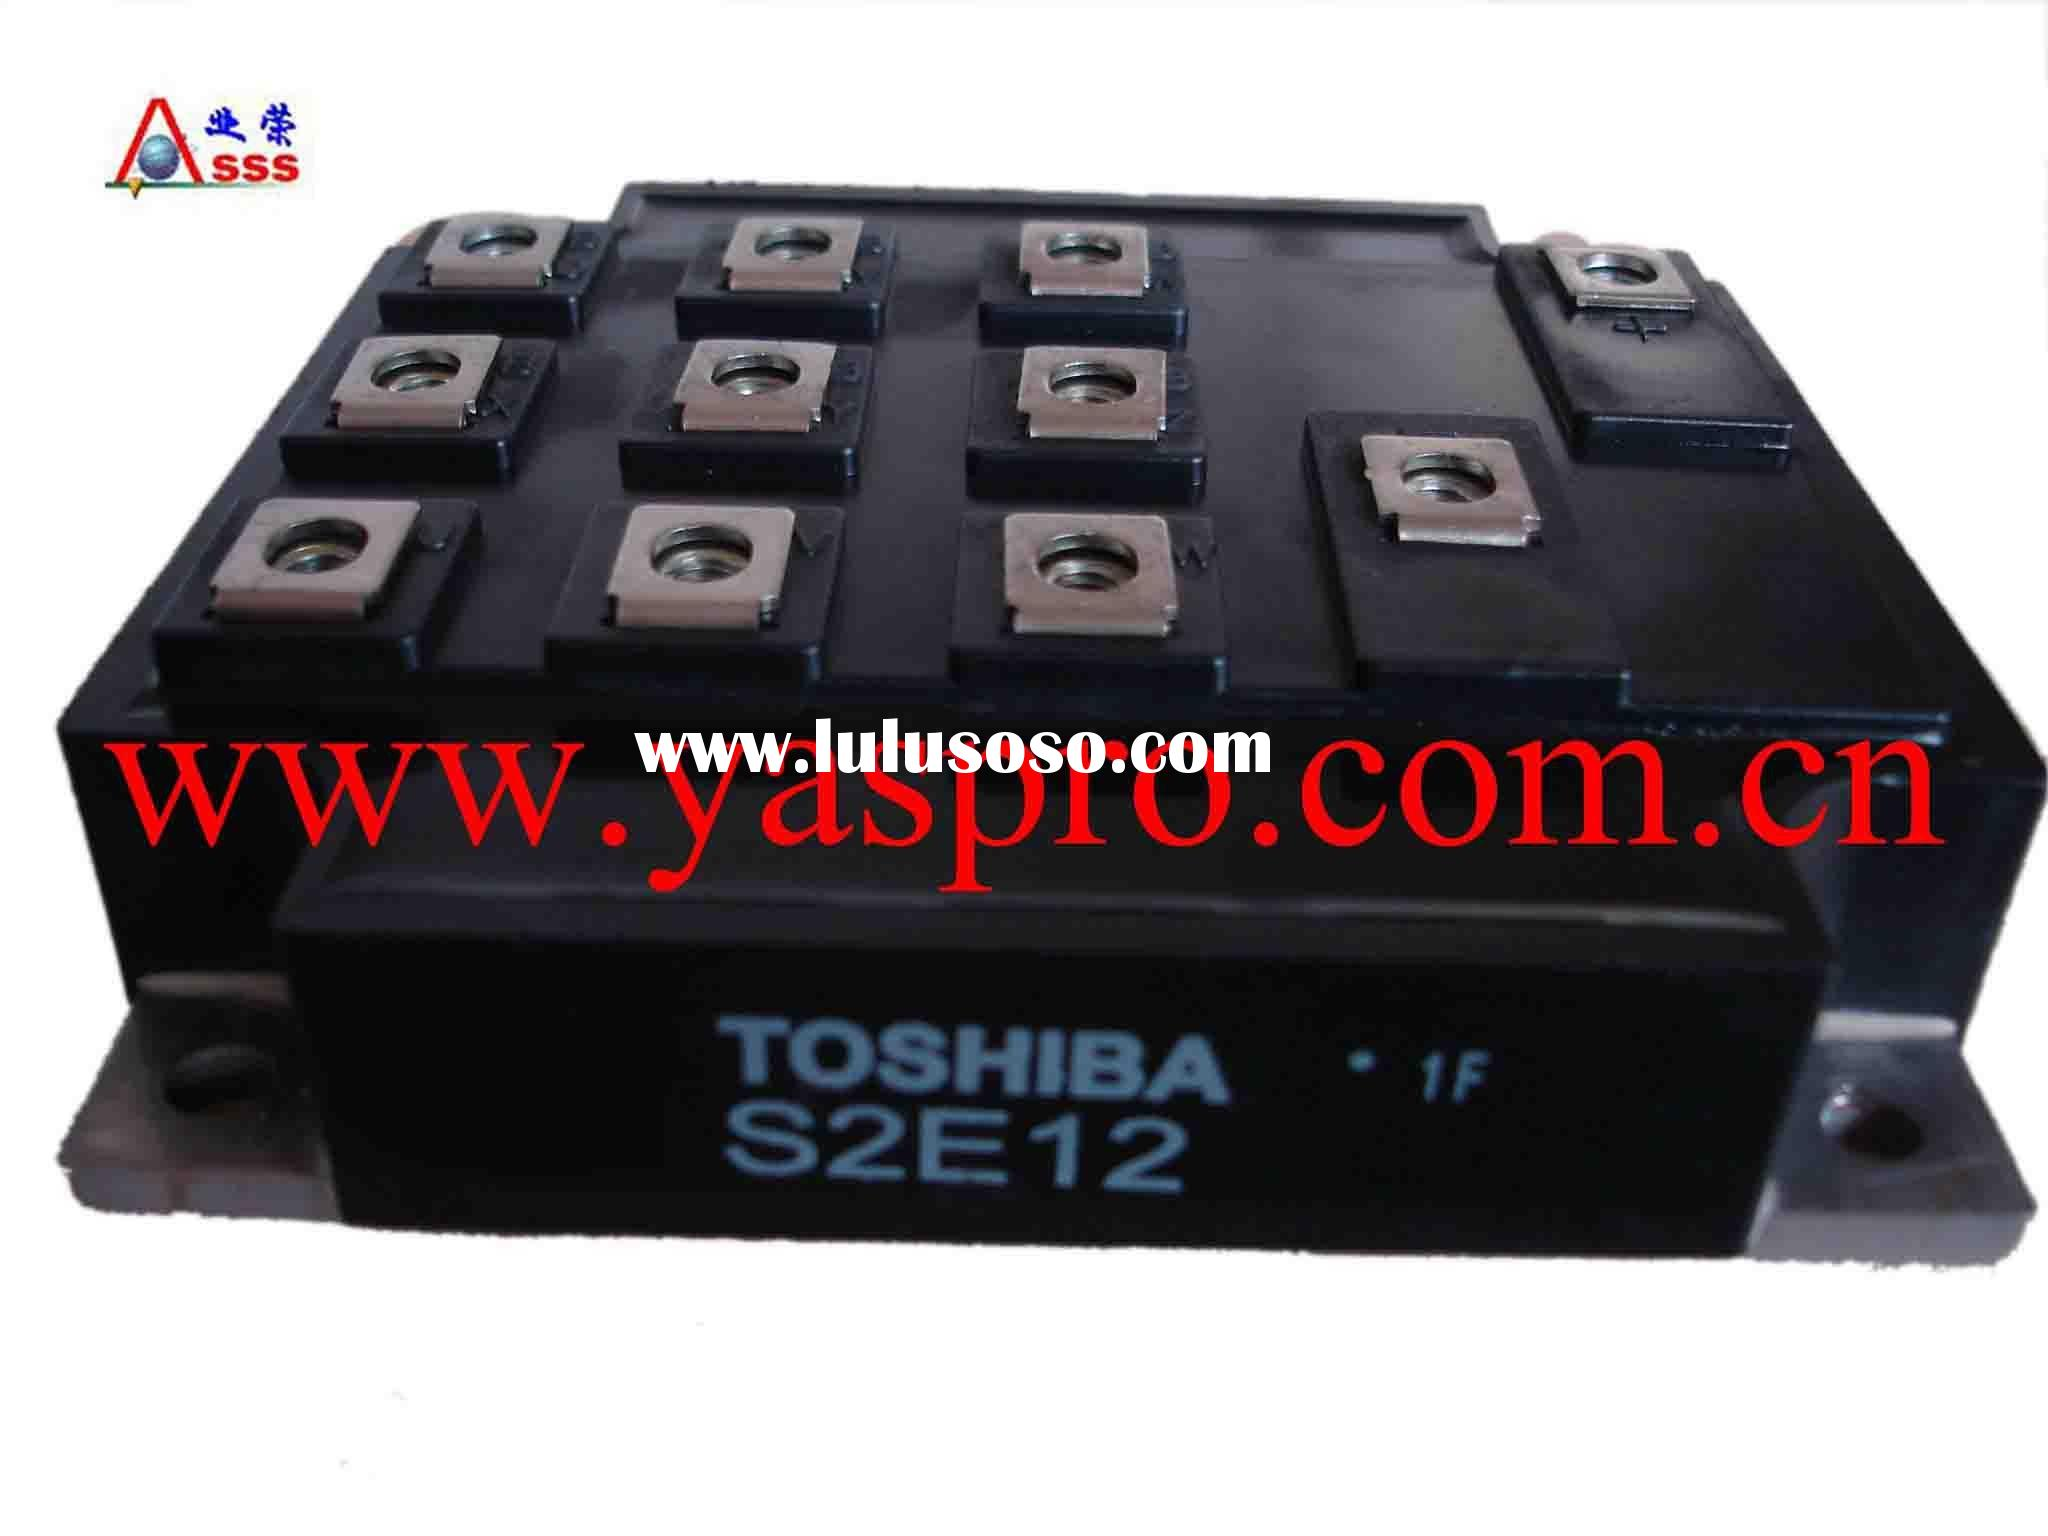 10l6p44 Toshiba Power Module For Sale Pricechina Manufacturer Igbt Inverter Circuit Manufacturers In Lulusoso S2e12